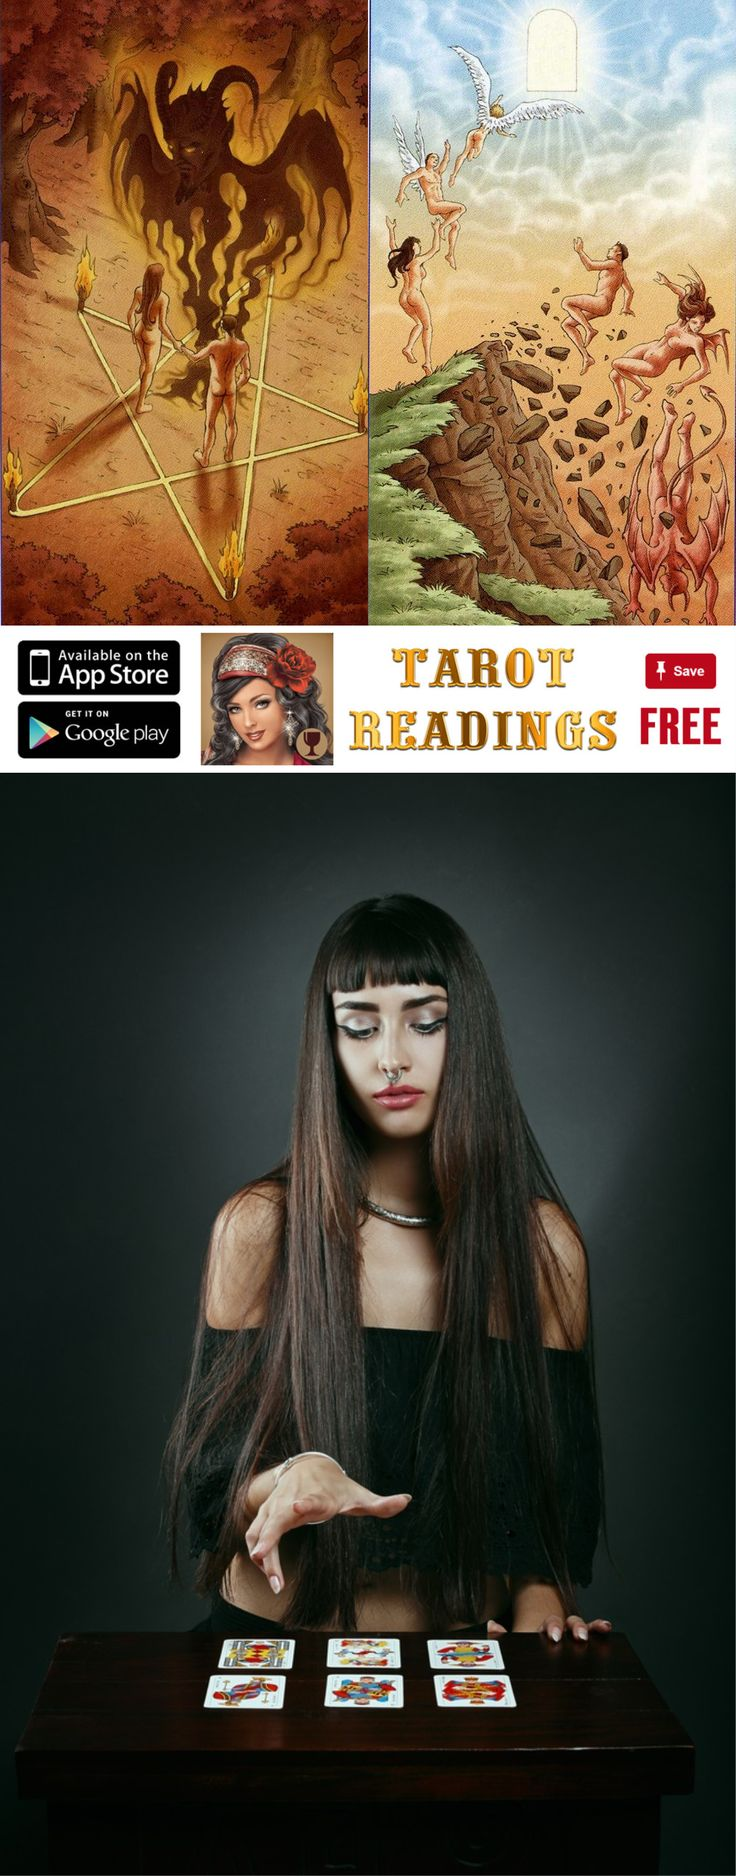 Get this FREE mobile app on your iOS and Android device and relish free lotus tarot, free physic reading and tarot prediction, real tarot card reading free online and free tarot reading.